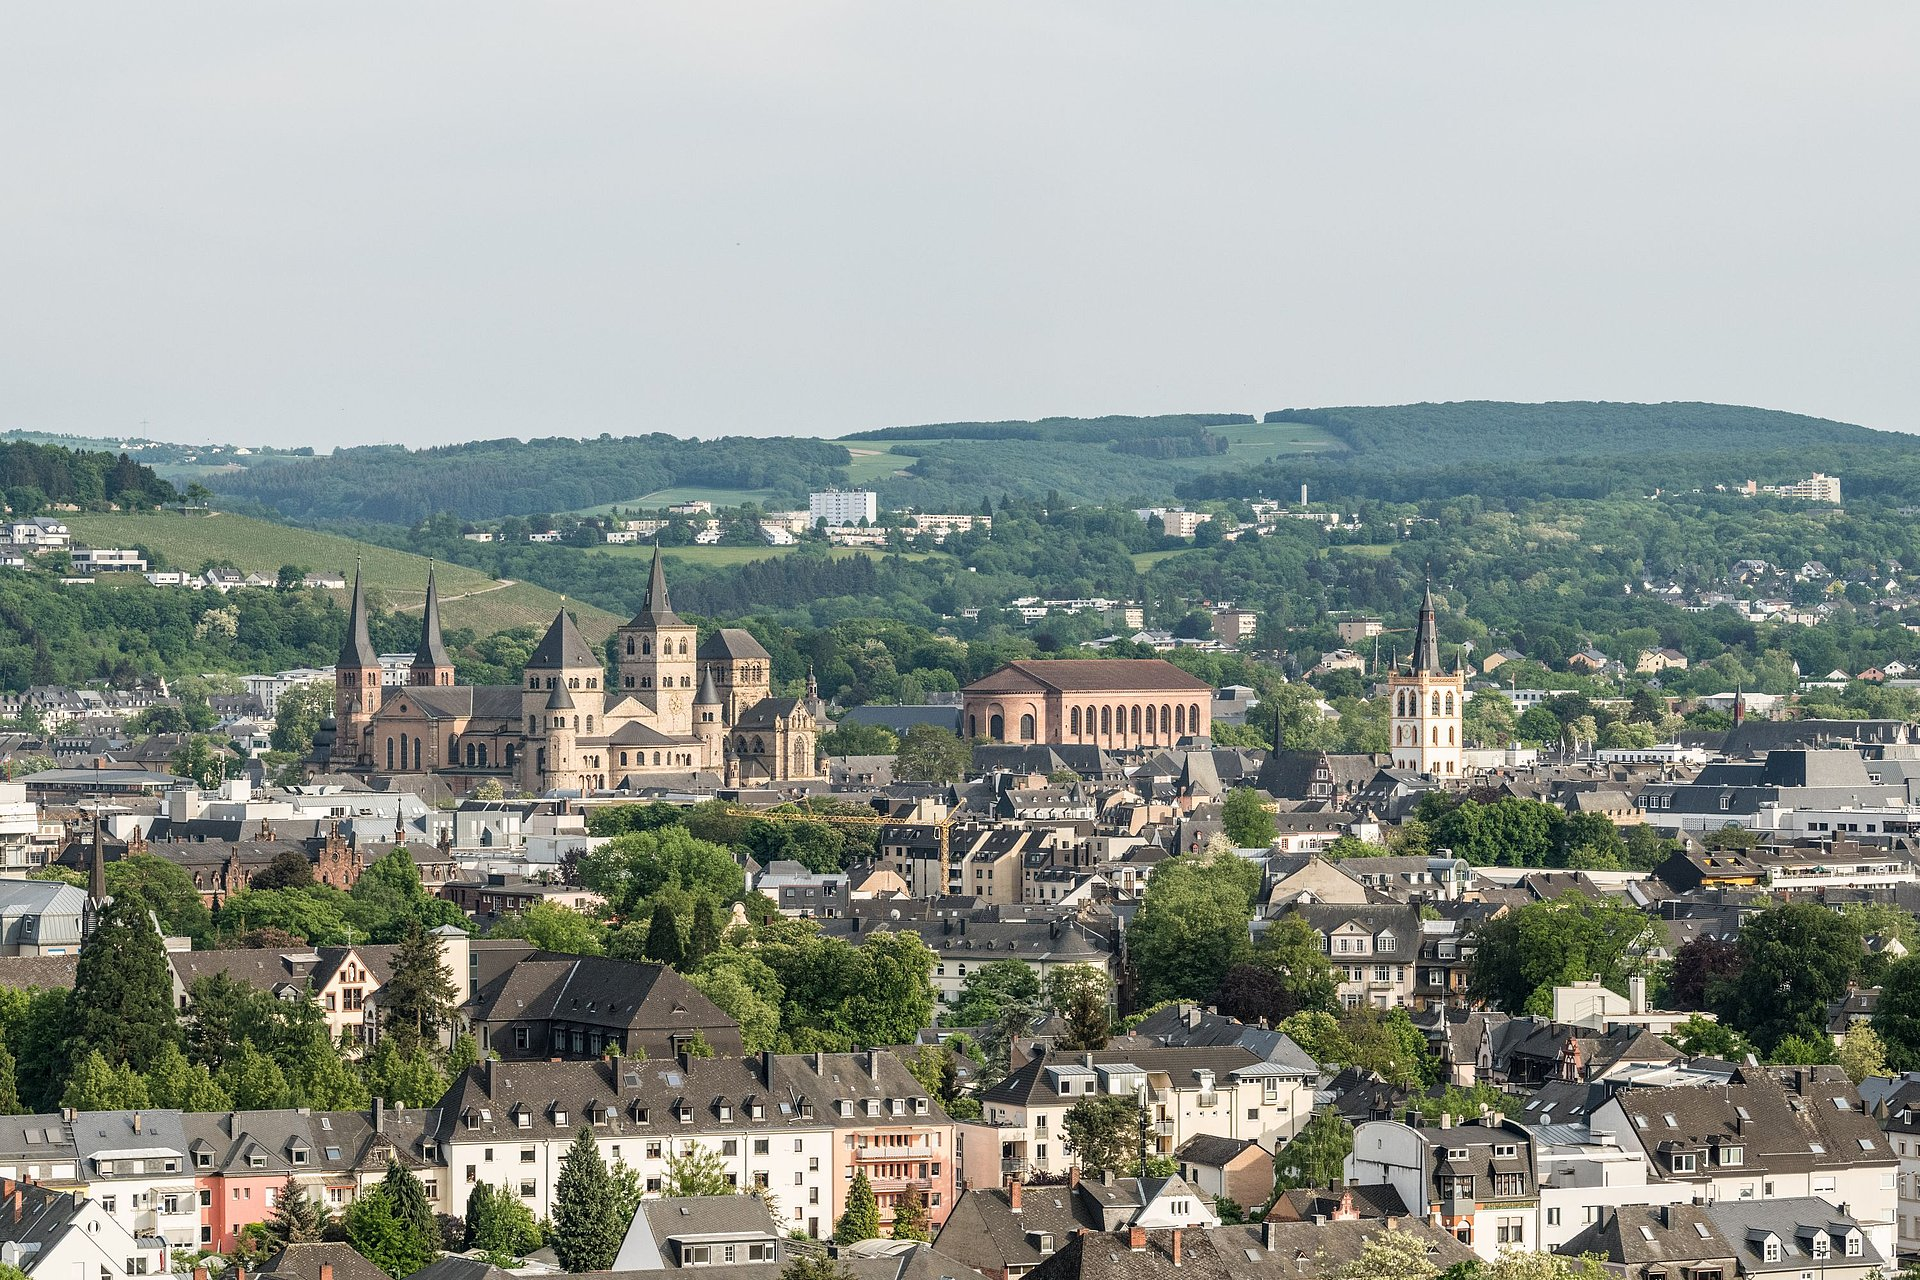 View of the city of Trier with the Trier Cathedral, Moselle